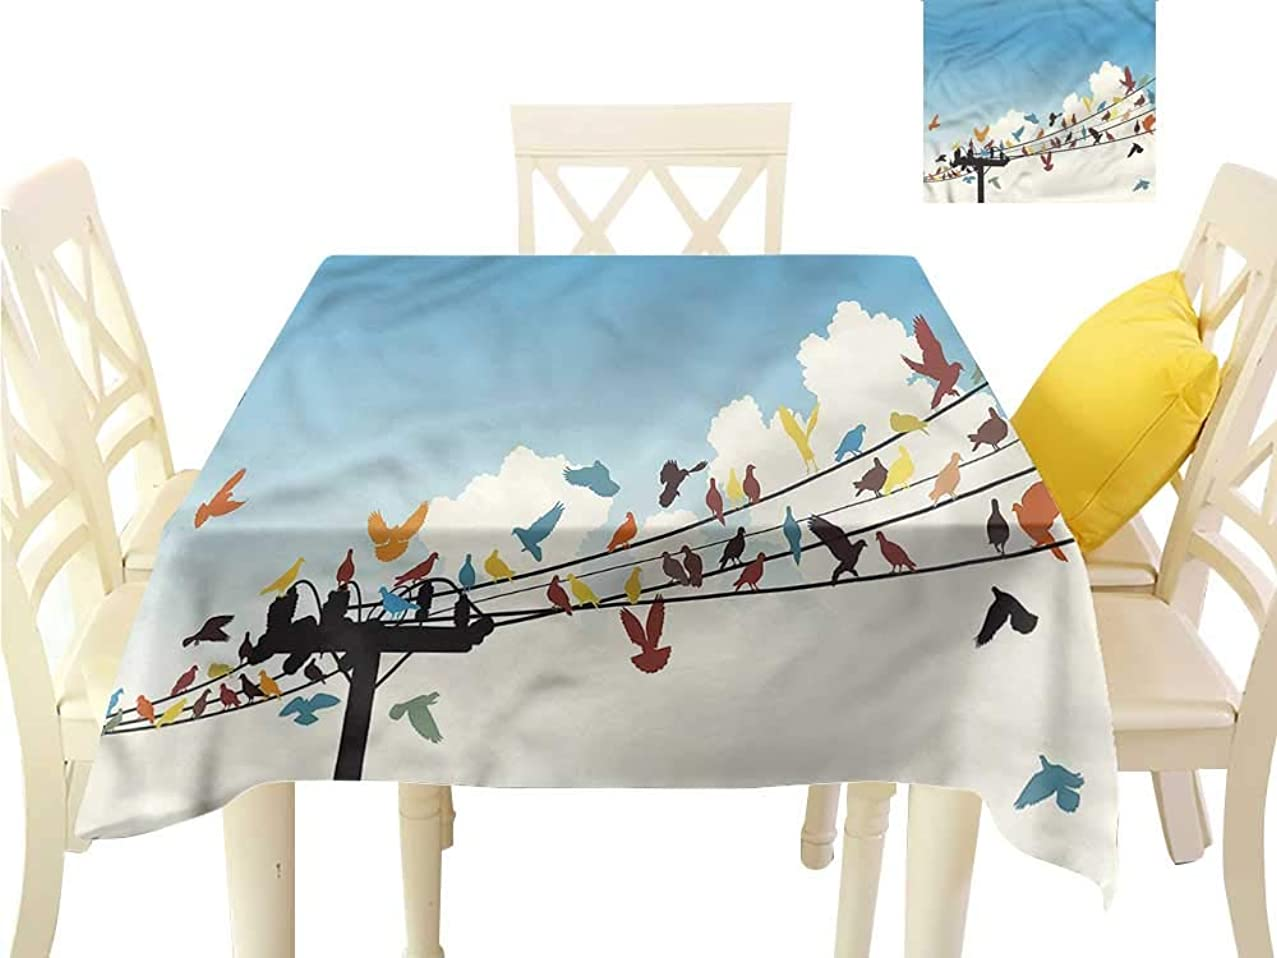 Davishouse Fabric Dust-Proof Table Cover Animals Bird Silhouettes Indoor Outdoor Camping Picnic W60 x L60